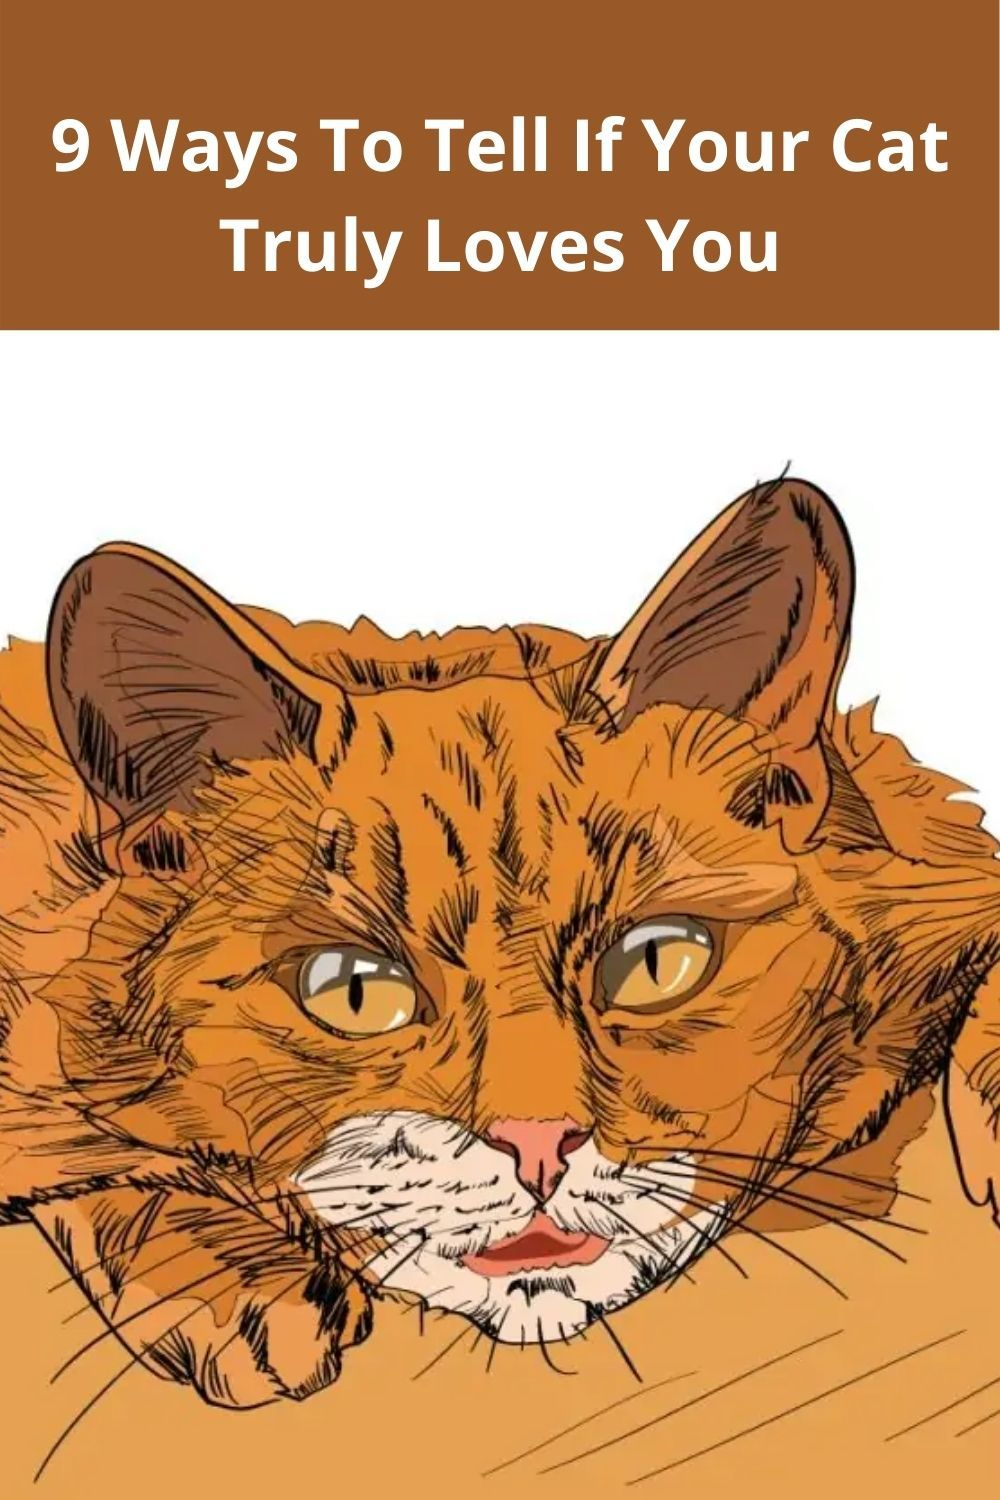 9 Ways To Tell If Your Cat Truly Loves You In 2020 Cat Language Cats Cats And Kittens